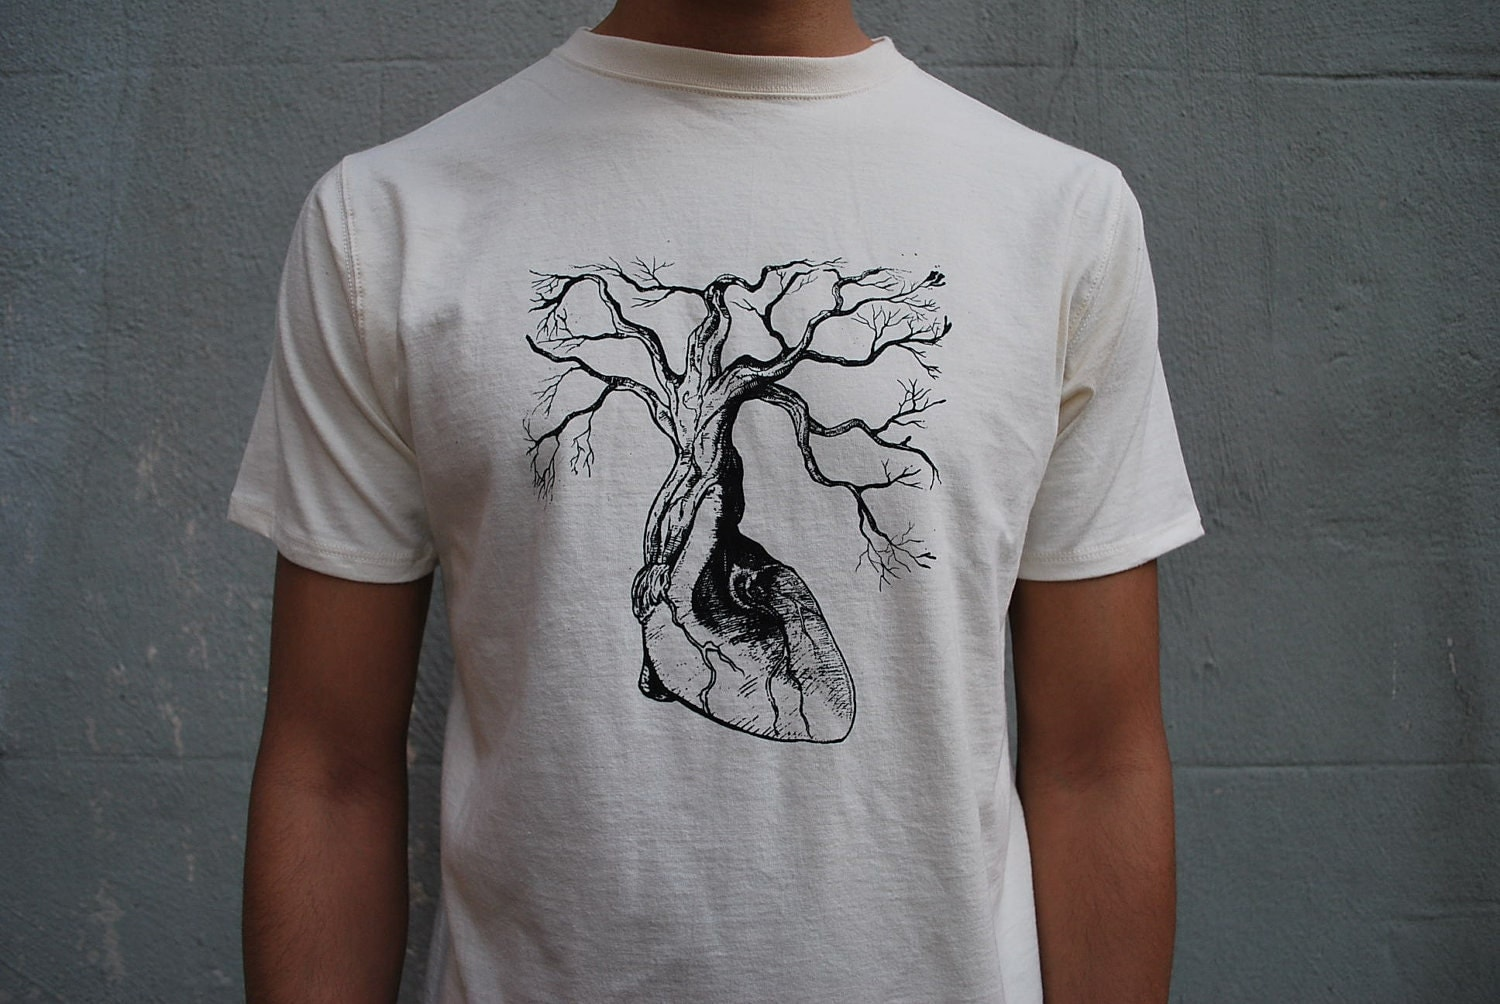 Organic cotton t shirt screen printed with by thelotusroot for Organic cotton t shirt printing